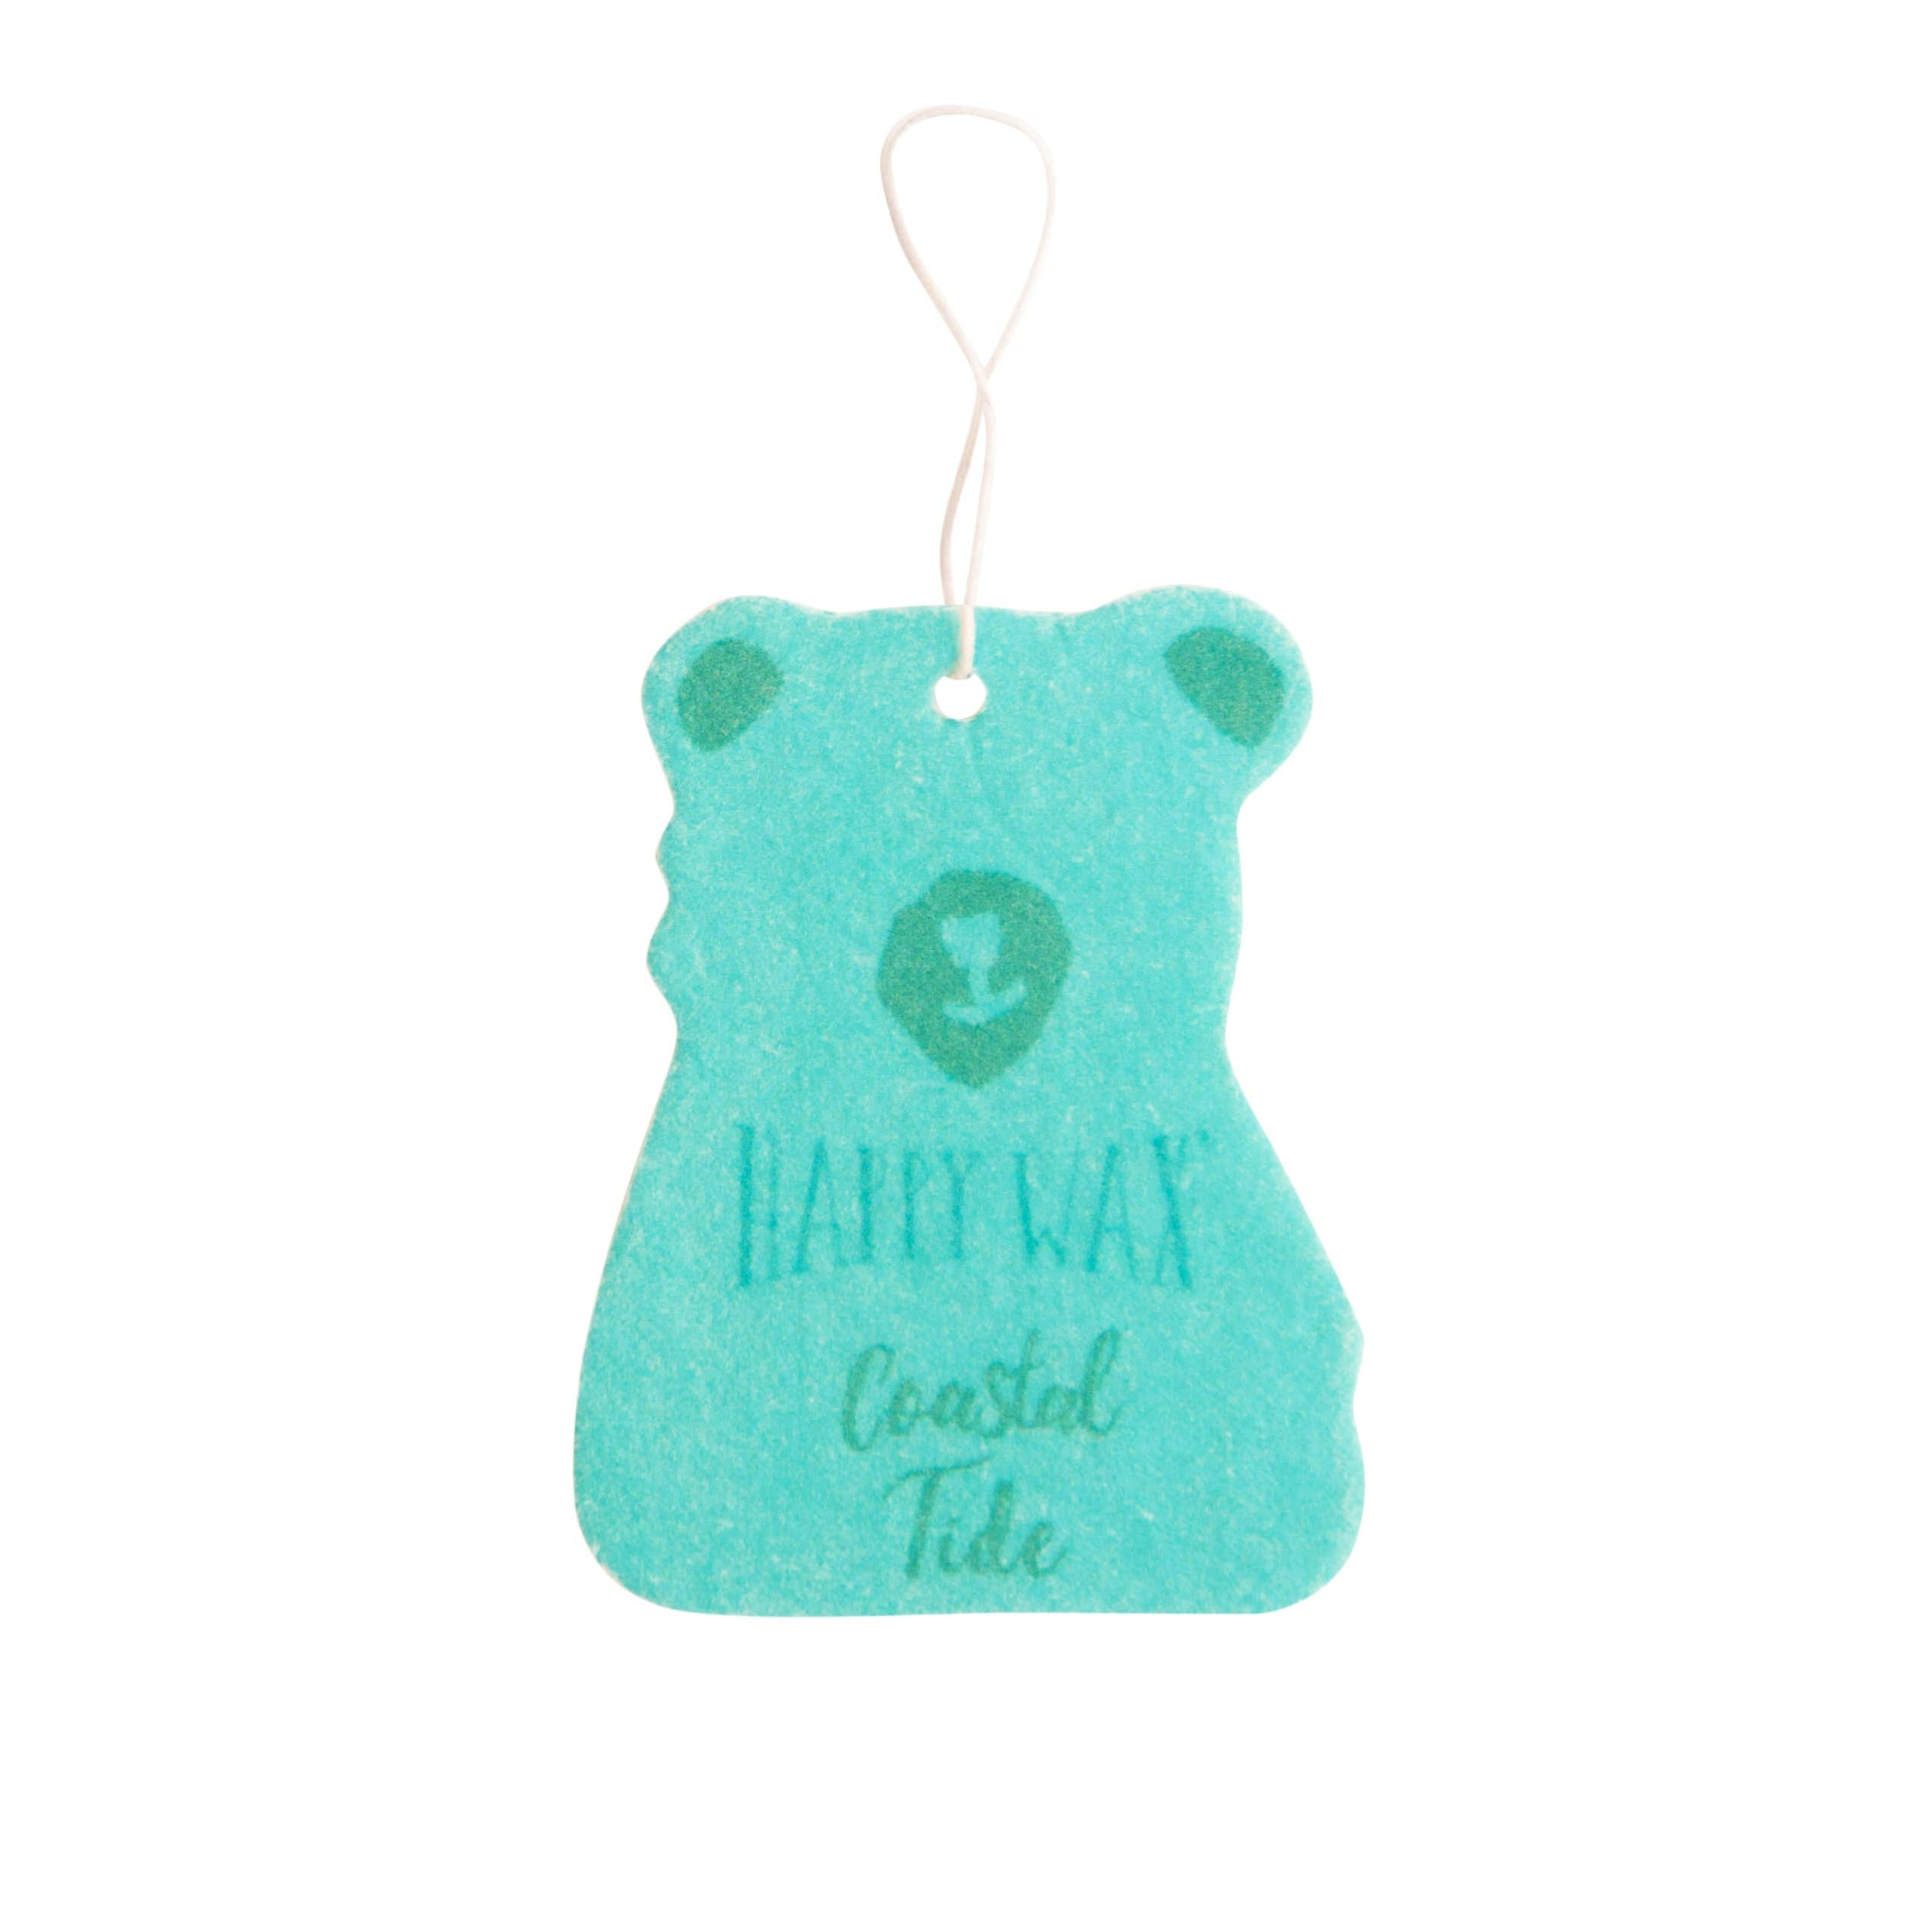 Happy Wax - Coastal Tide Scented Car Freshener - Le Bébé Chic Boutique